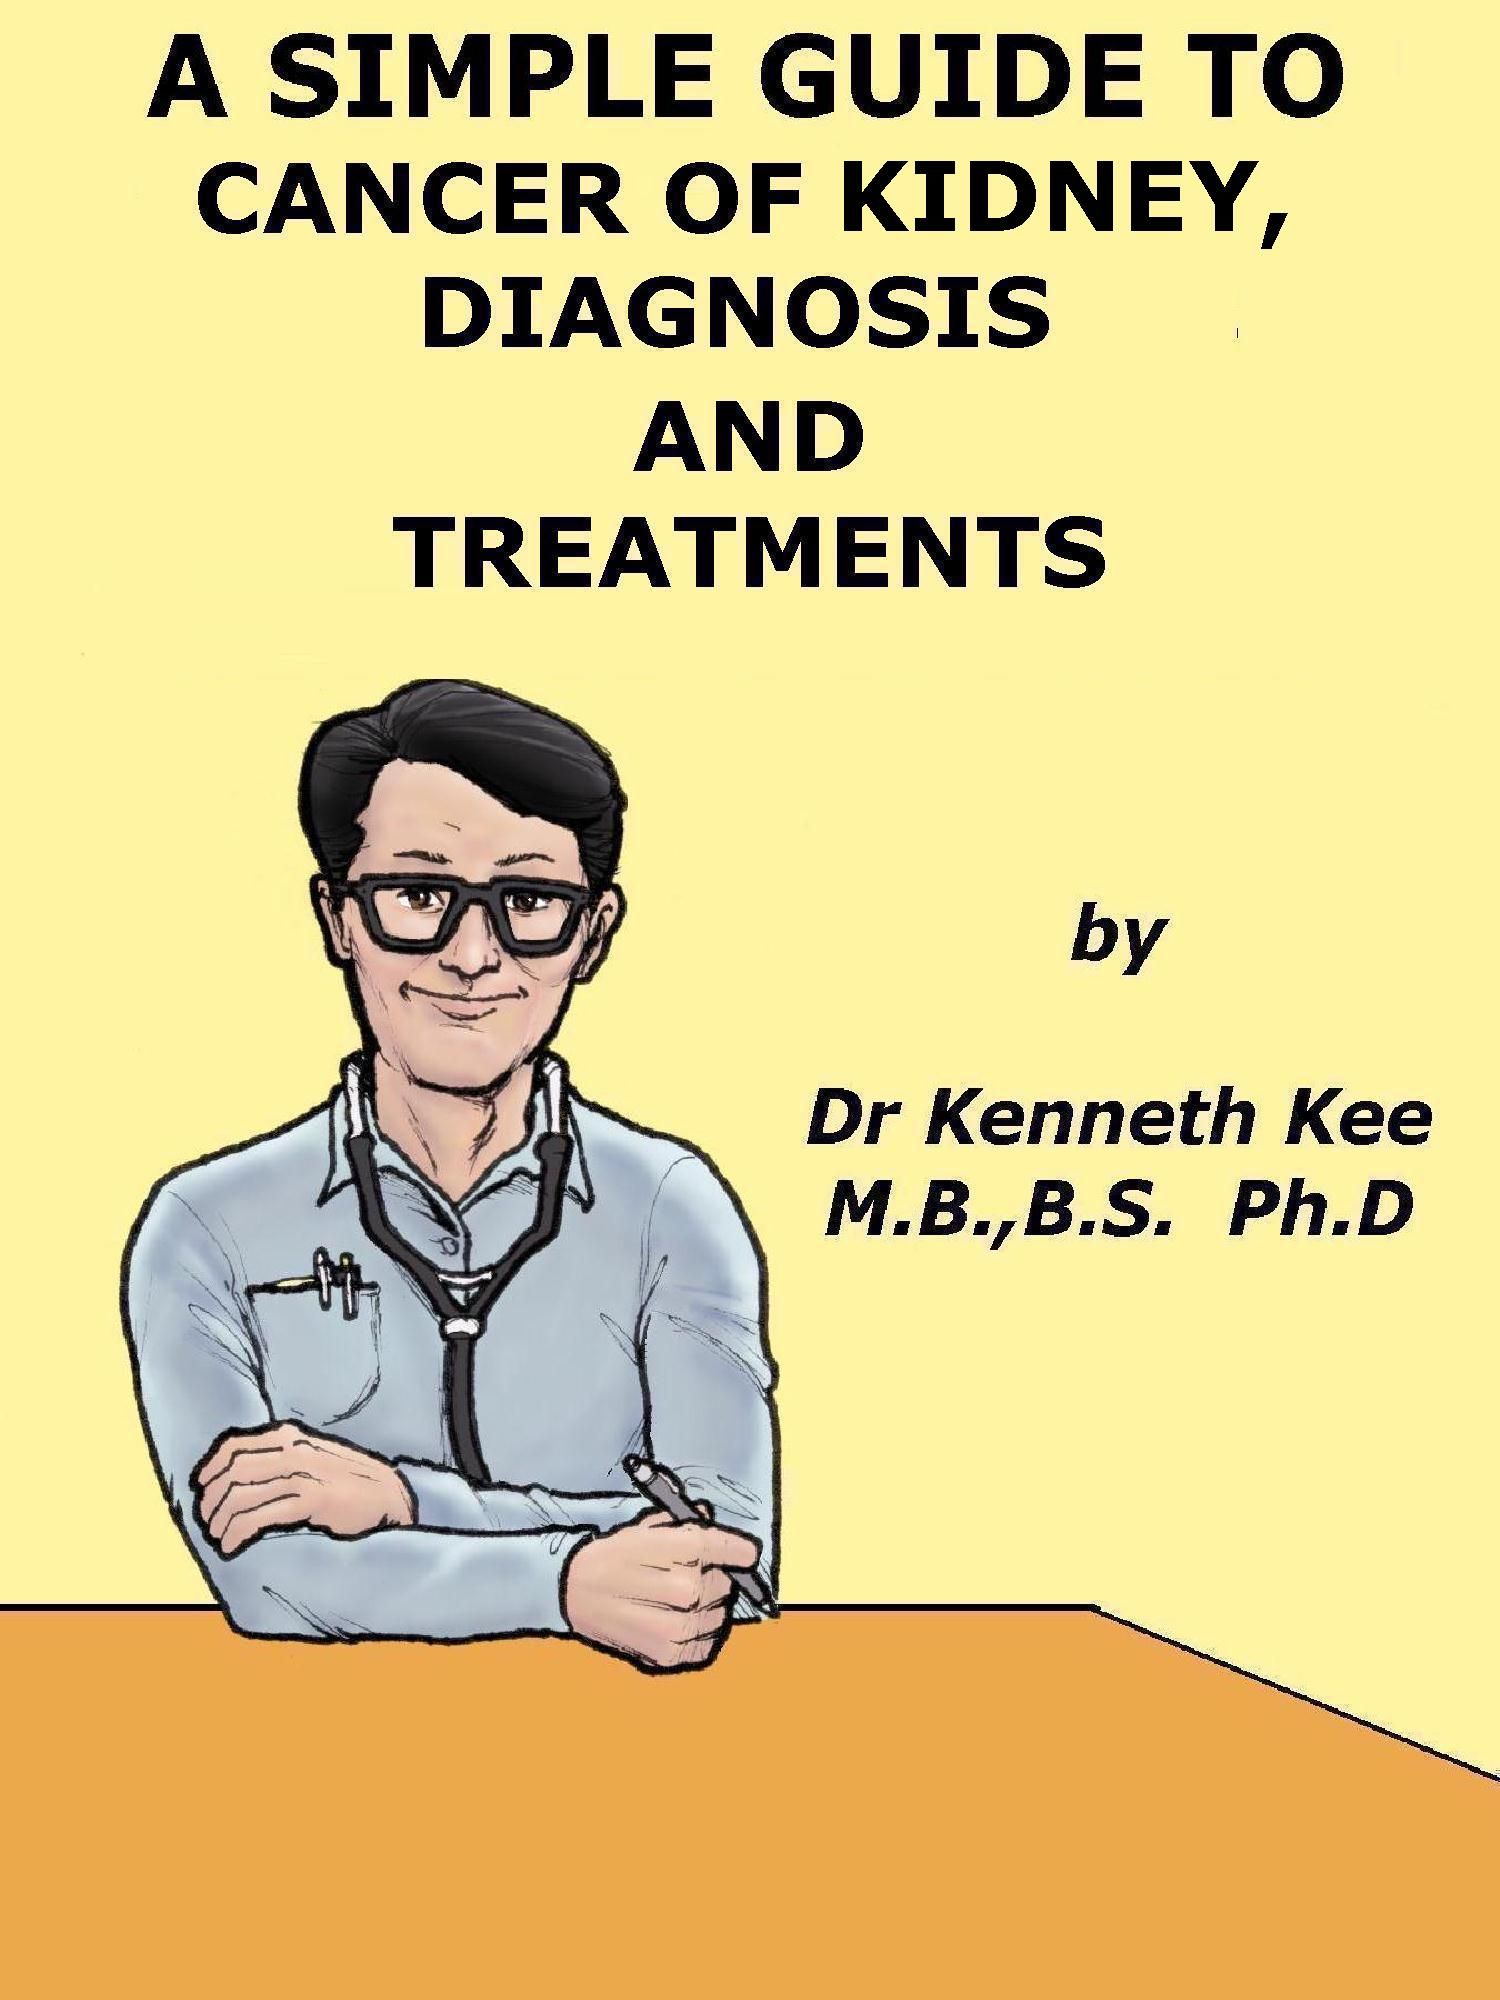 A Simple Guide to Kidney Cancer, Diagnosis and Treatment http://amazon.com/dp/B00BSWXOHA